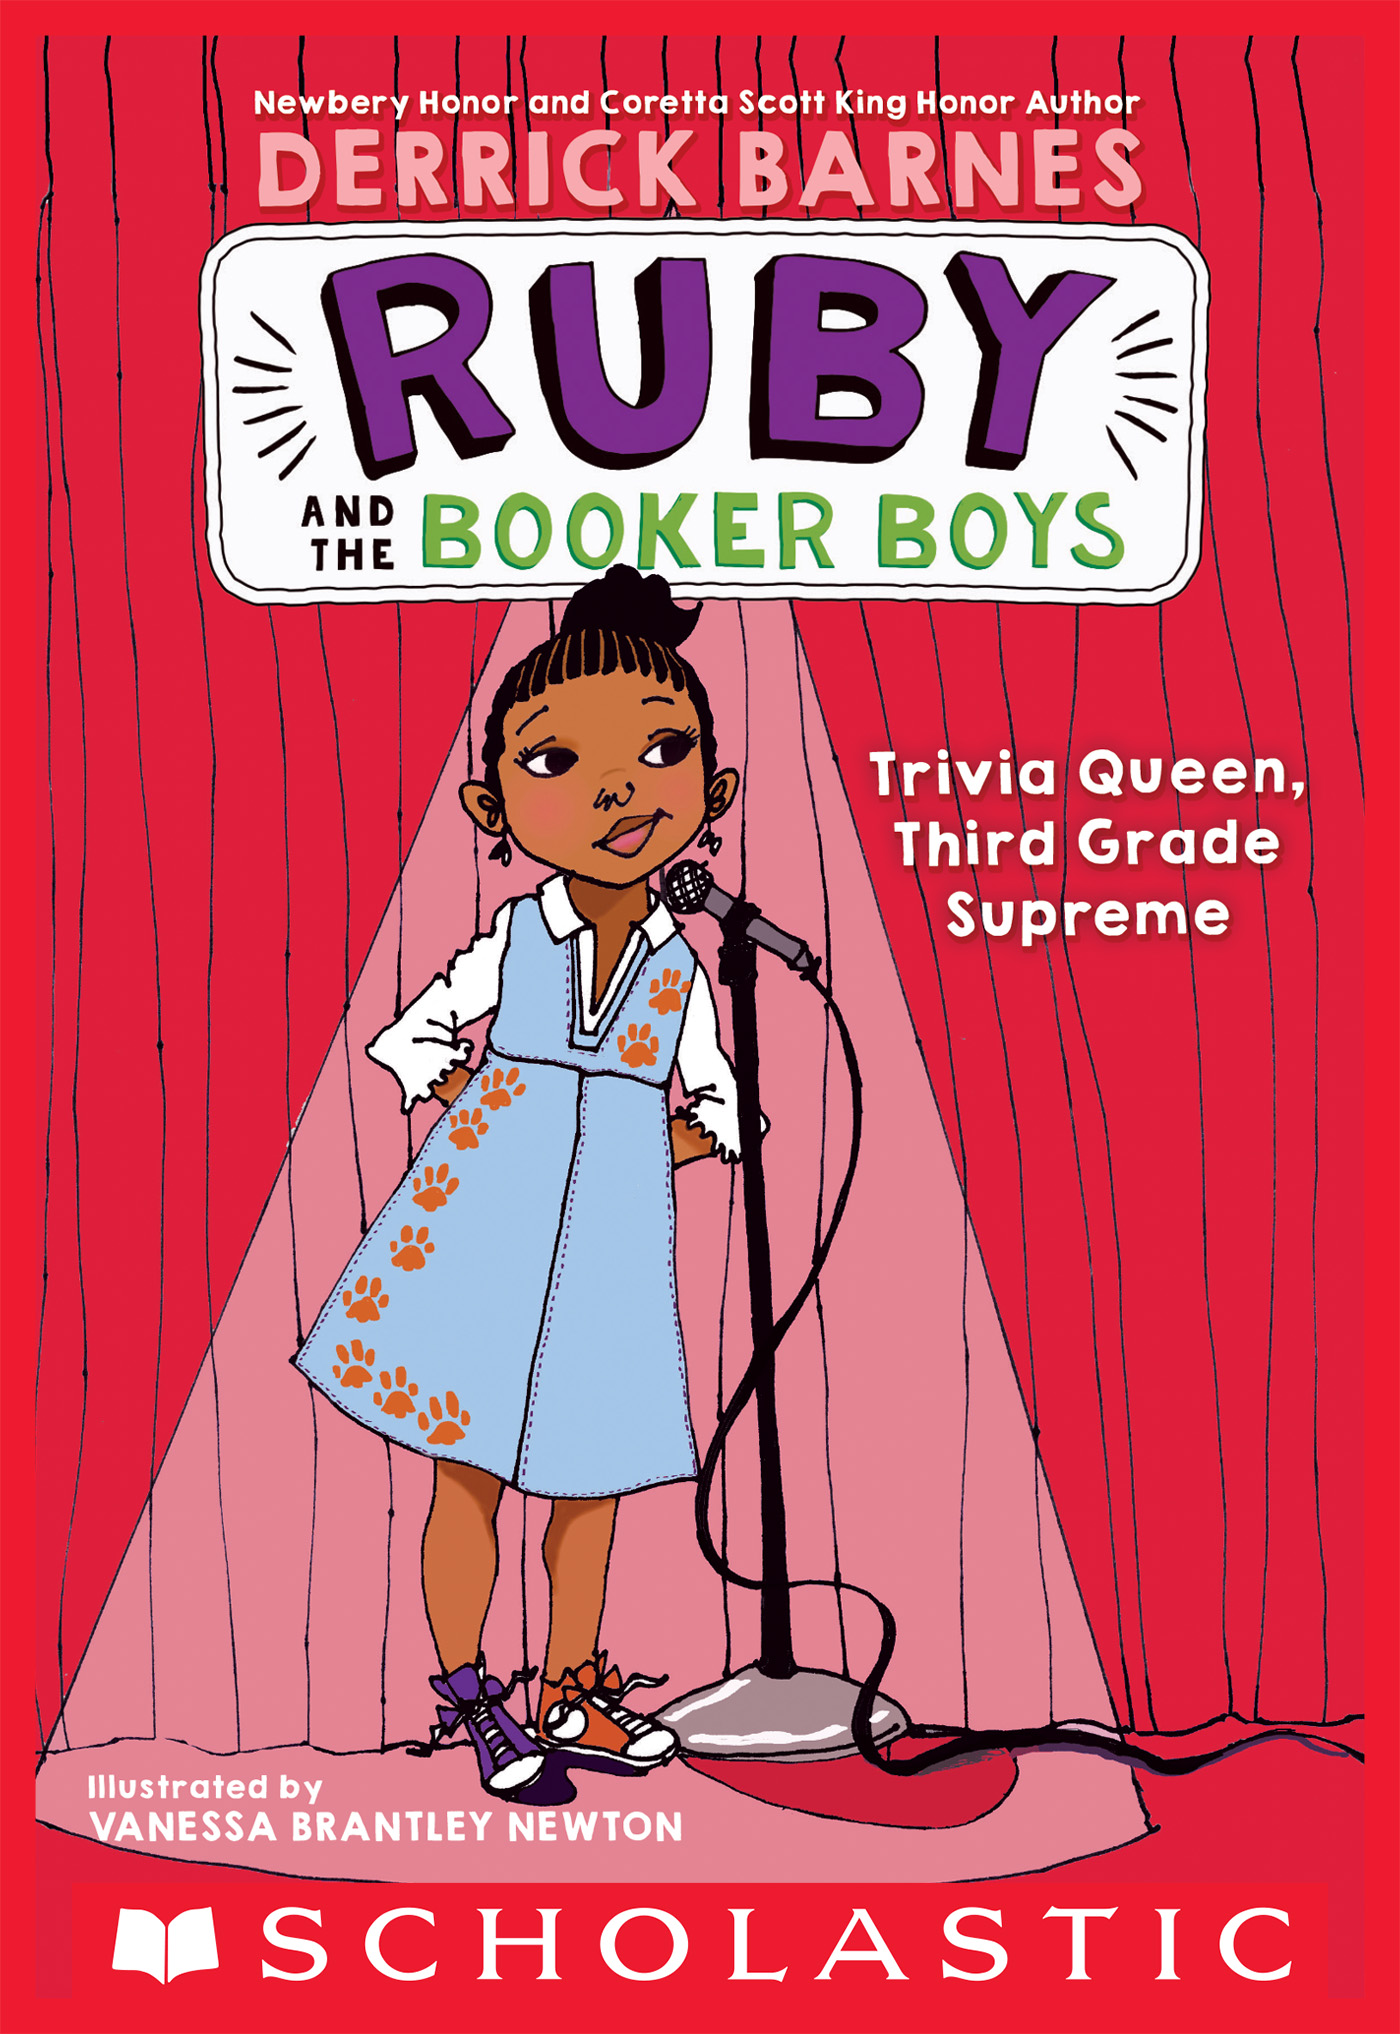 Trivia Queen, Third Grade Supreme (Ruby and the Booker Boys #2)